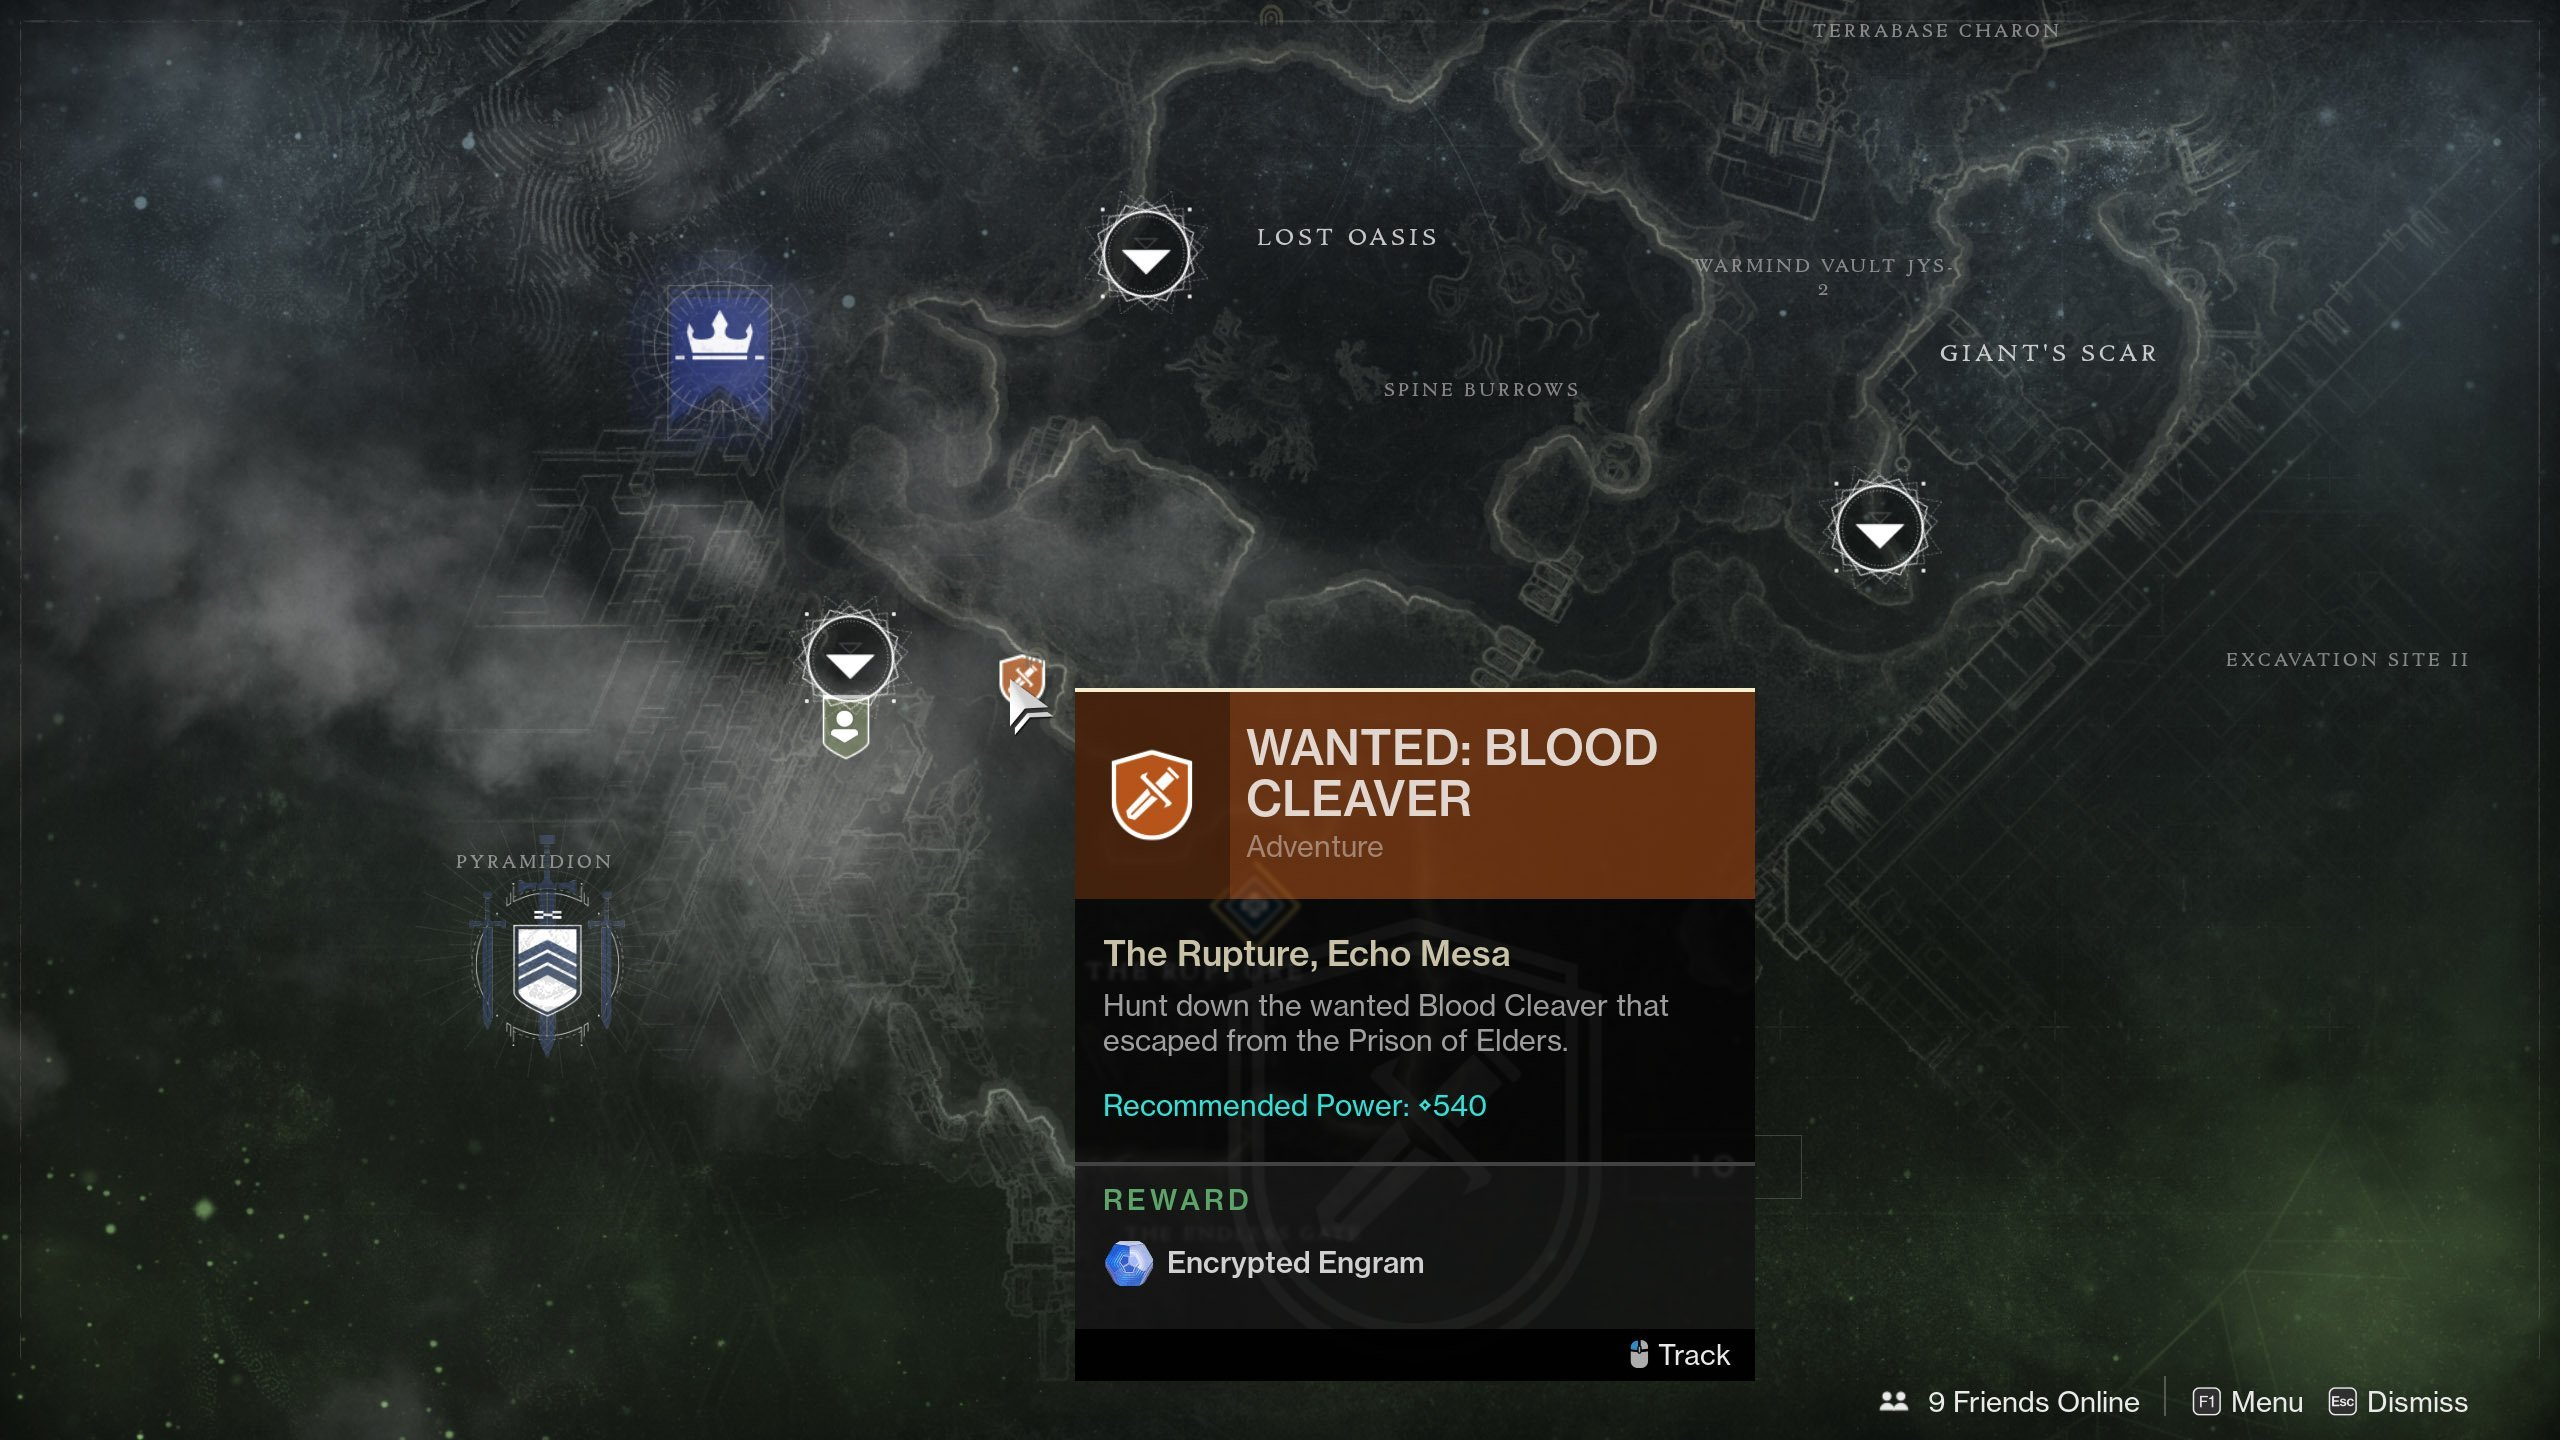 Wanted: Blood Cleaver guide for Destiny 2